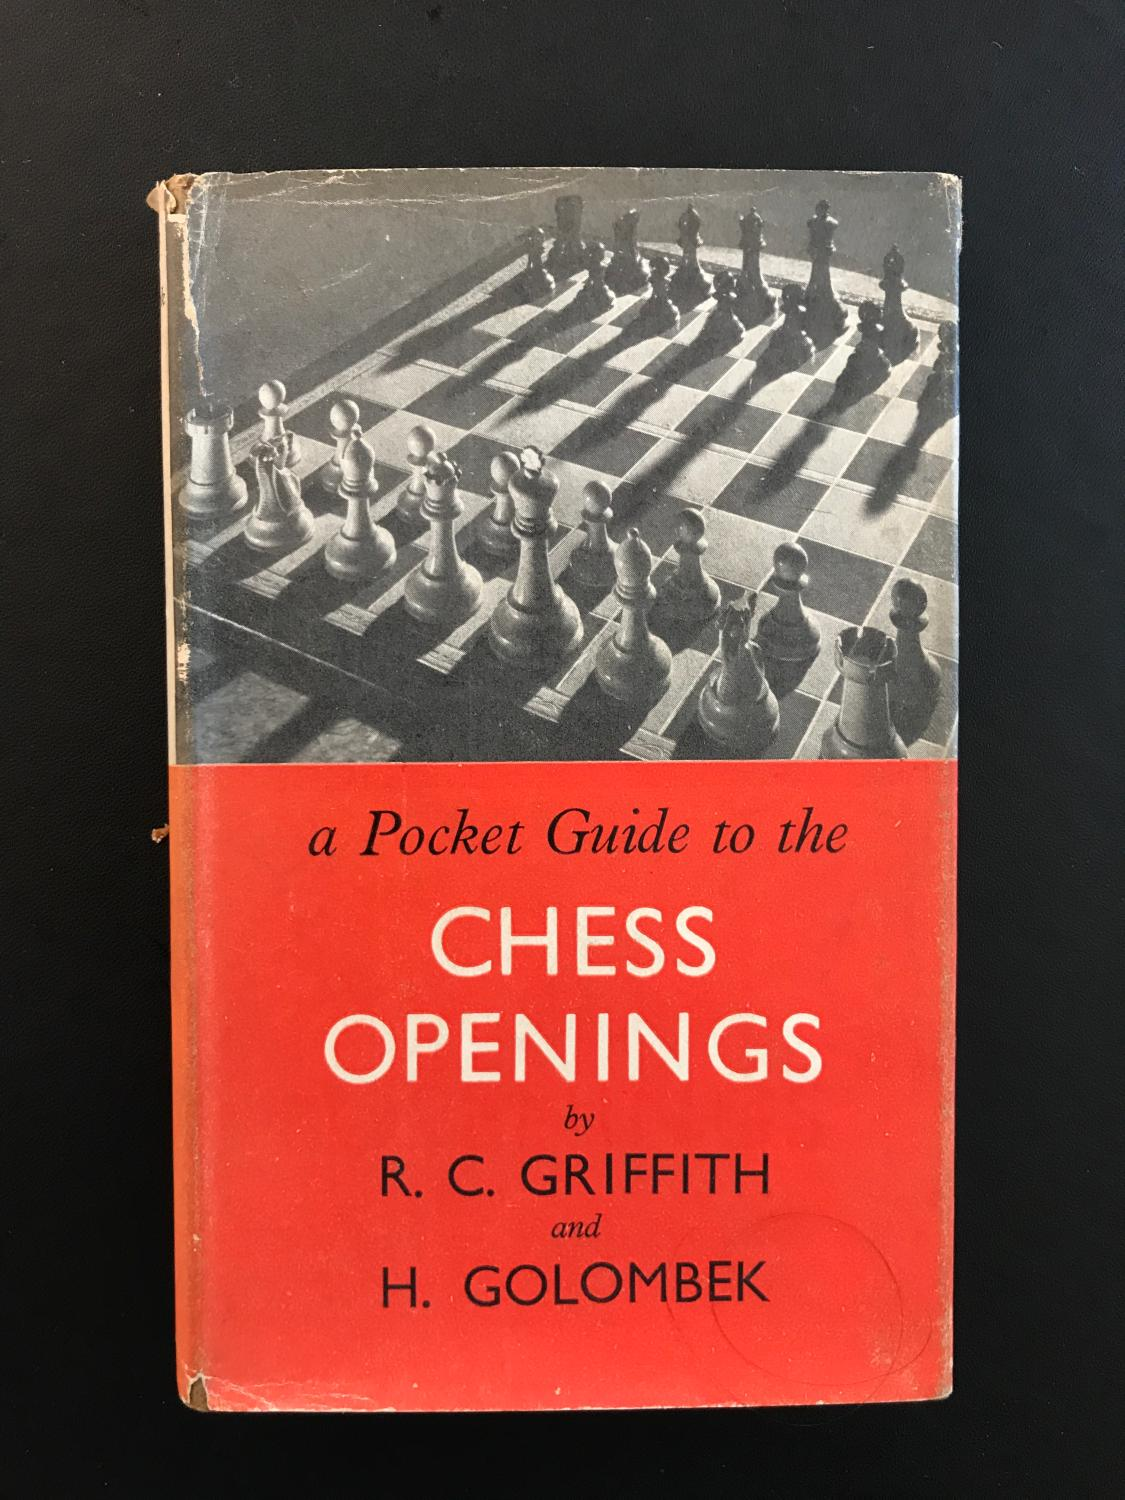 A Pocket Guide to the Chess Openings, RC Griffith and H Golombek Bell & Sons, 1949